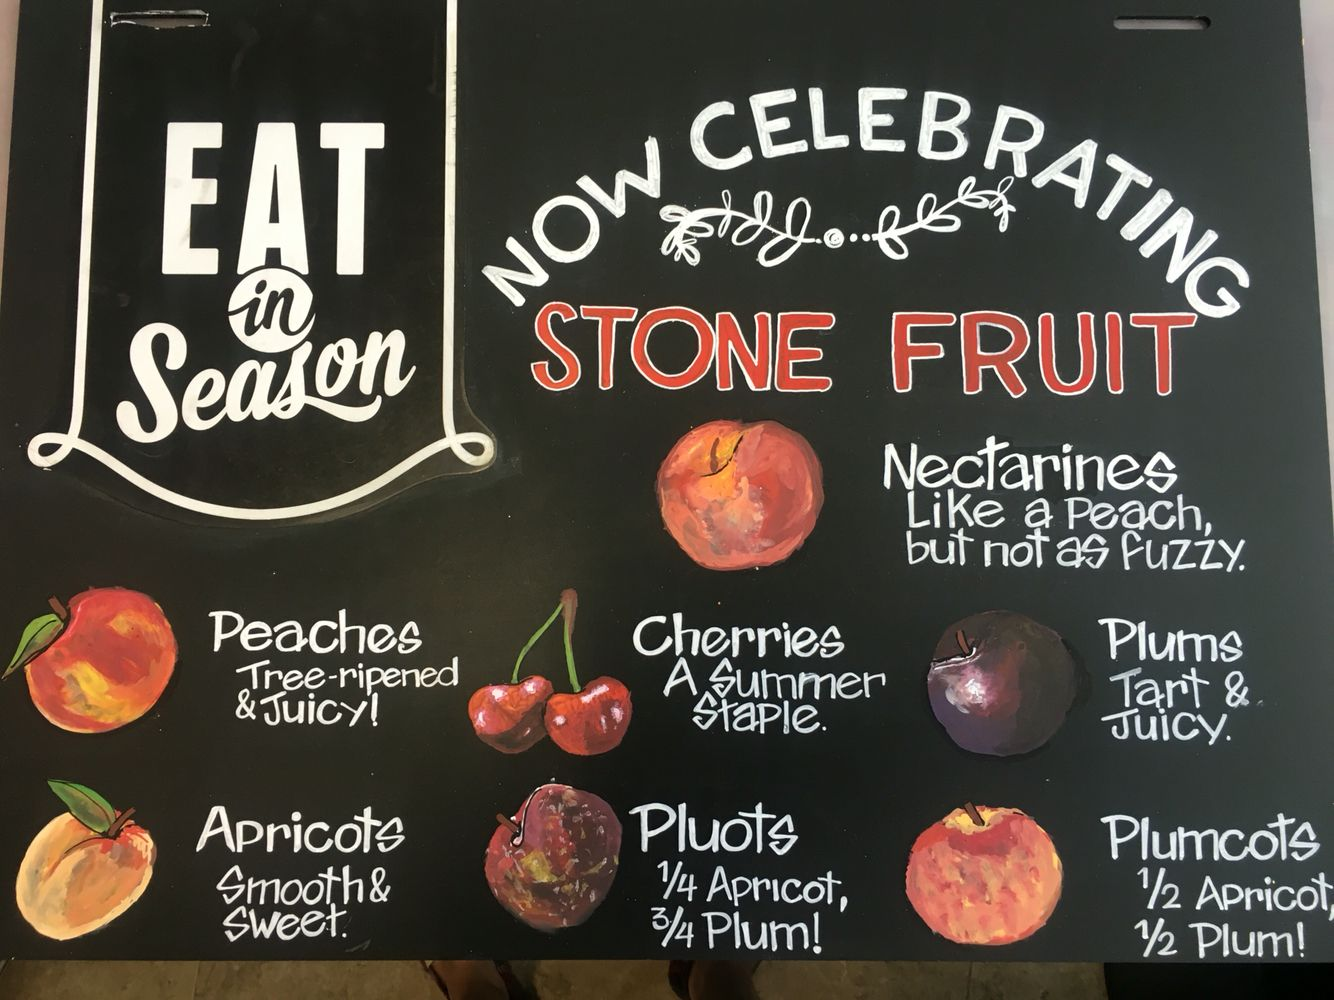 Eat in season whole foods chalkboard for stone fruits. Freehand illustration and calligraphy